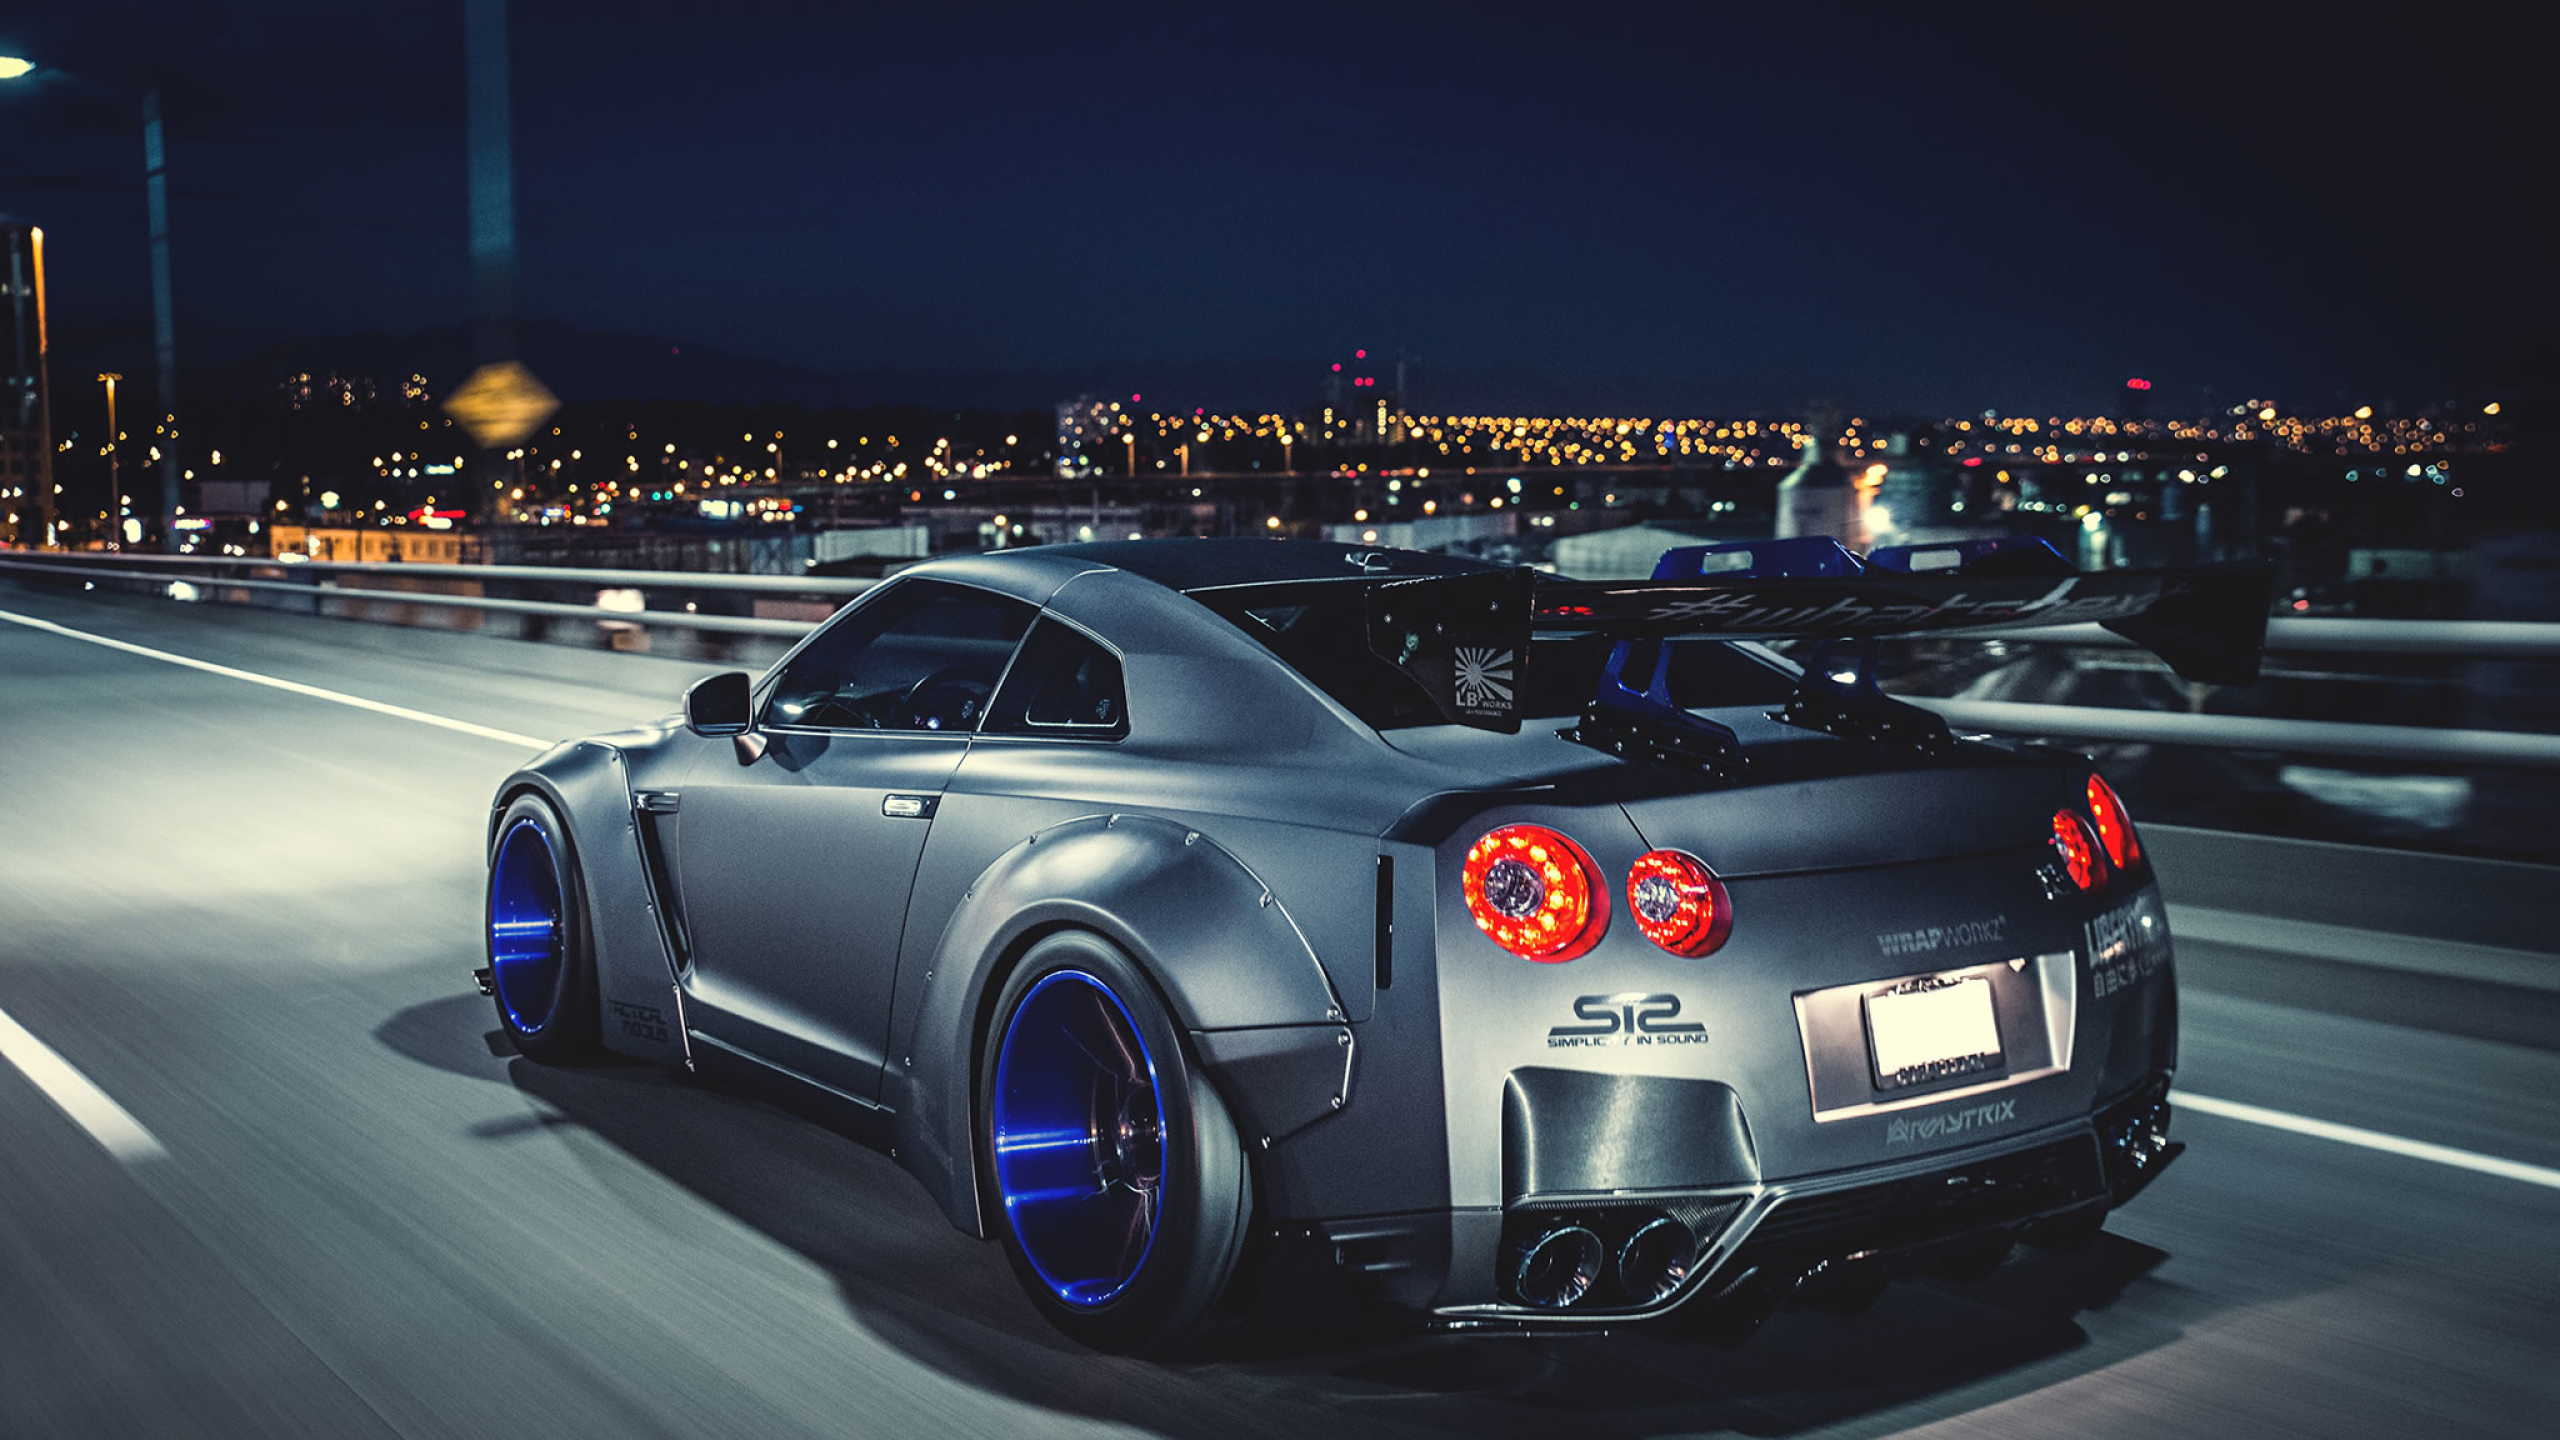 download 2560x1440 liberty walk nissan gt r r35 tuning cars nissan gt r nissan wallpapers. Black Bedroom Furniture Sets. Home Design Ideas